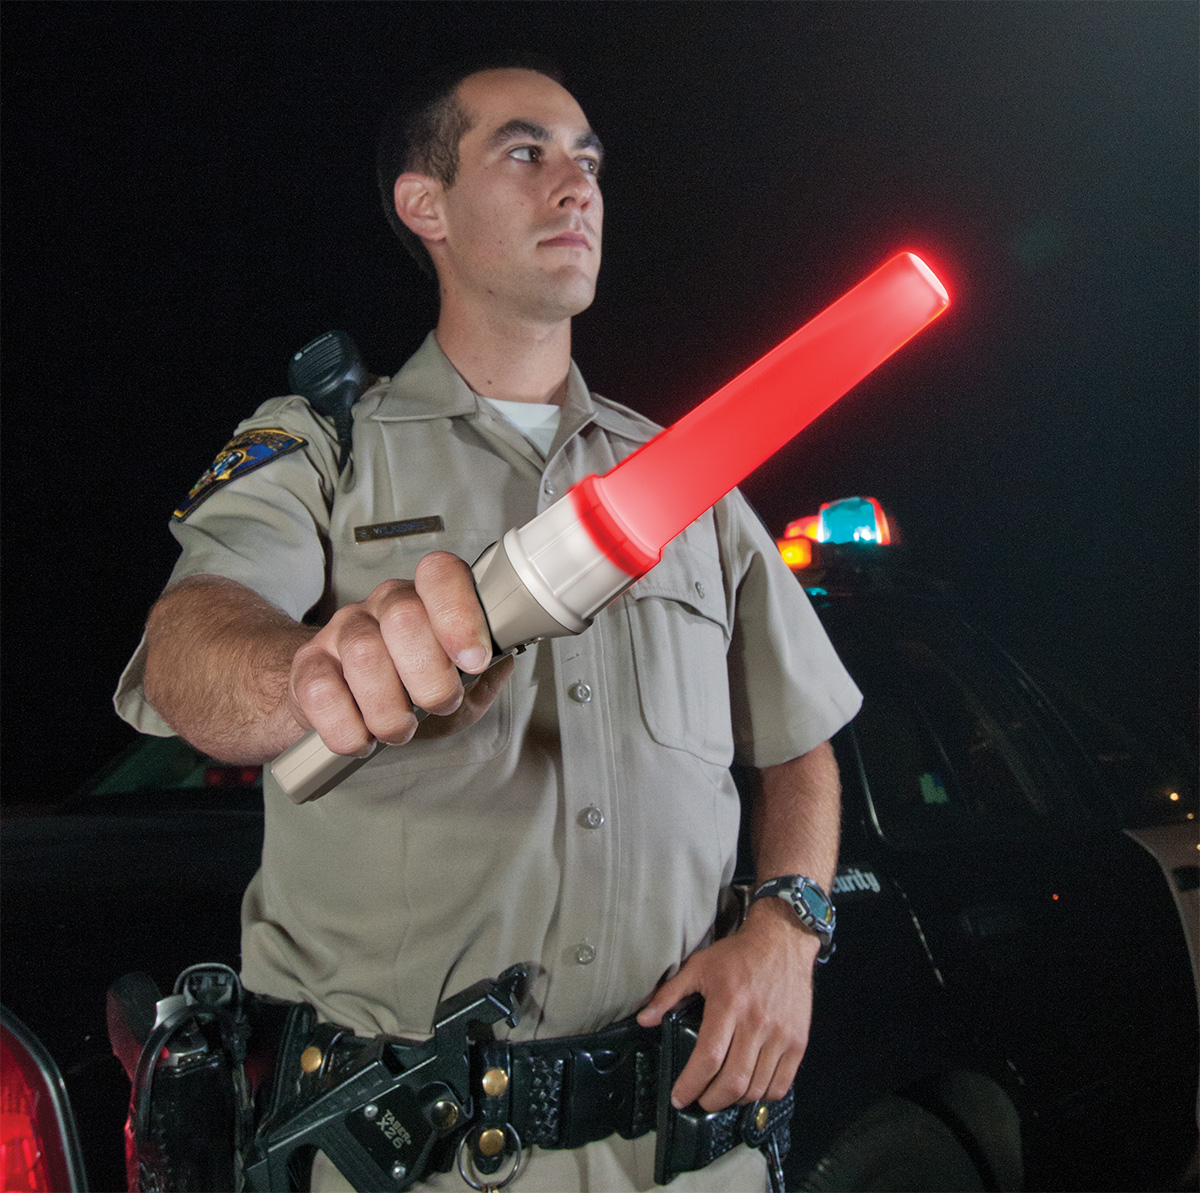 pelican peli products 2490 traffic cop police direction wand light